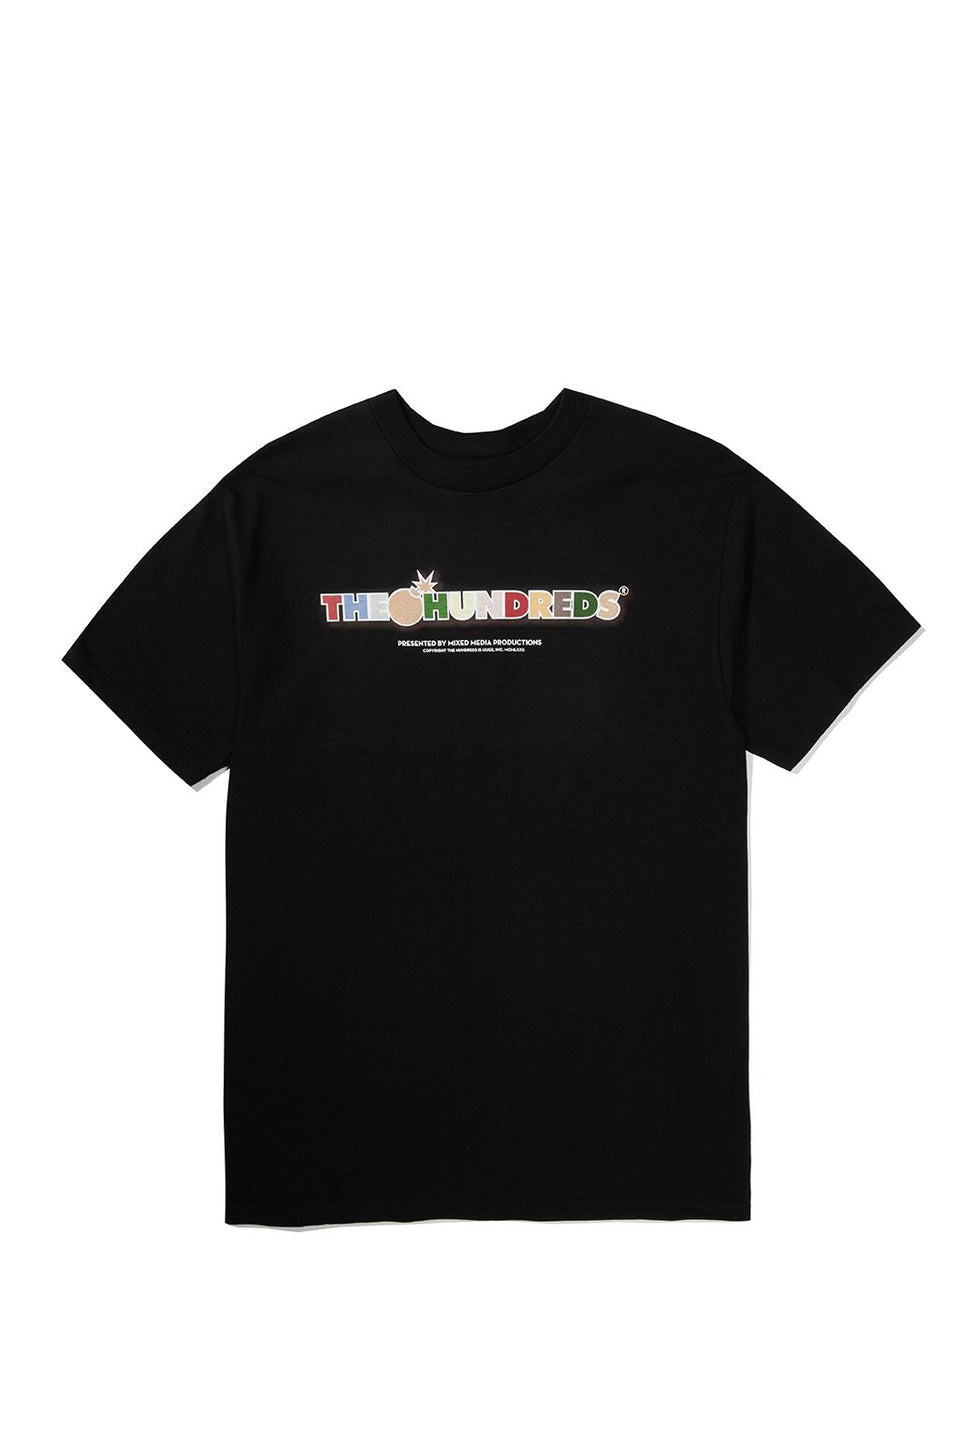 Toon Bar T-Shirt